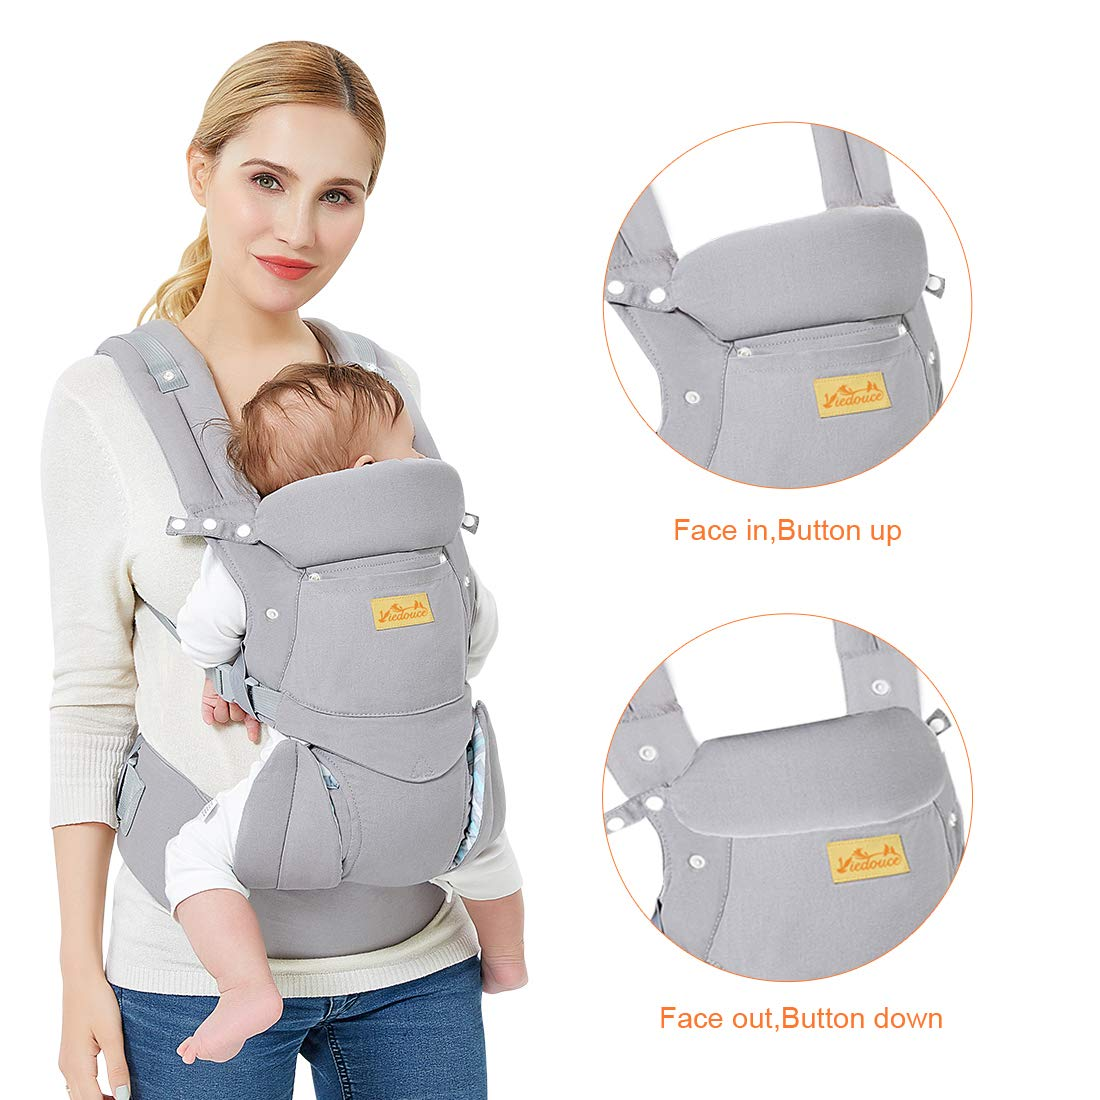 Adjustable for Newborn and Toddler from 0 to 4 years 3.5 to 20 kg Ventral Viedouce Baby Carrier Ergonomic with Hip Seat// Pure Cotton Lightweight and Breathable// Multiposition:Dorsal